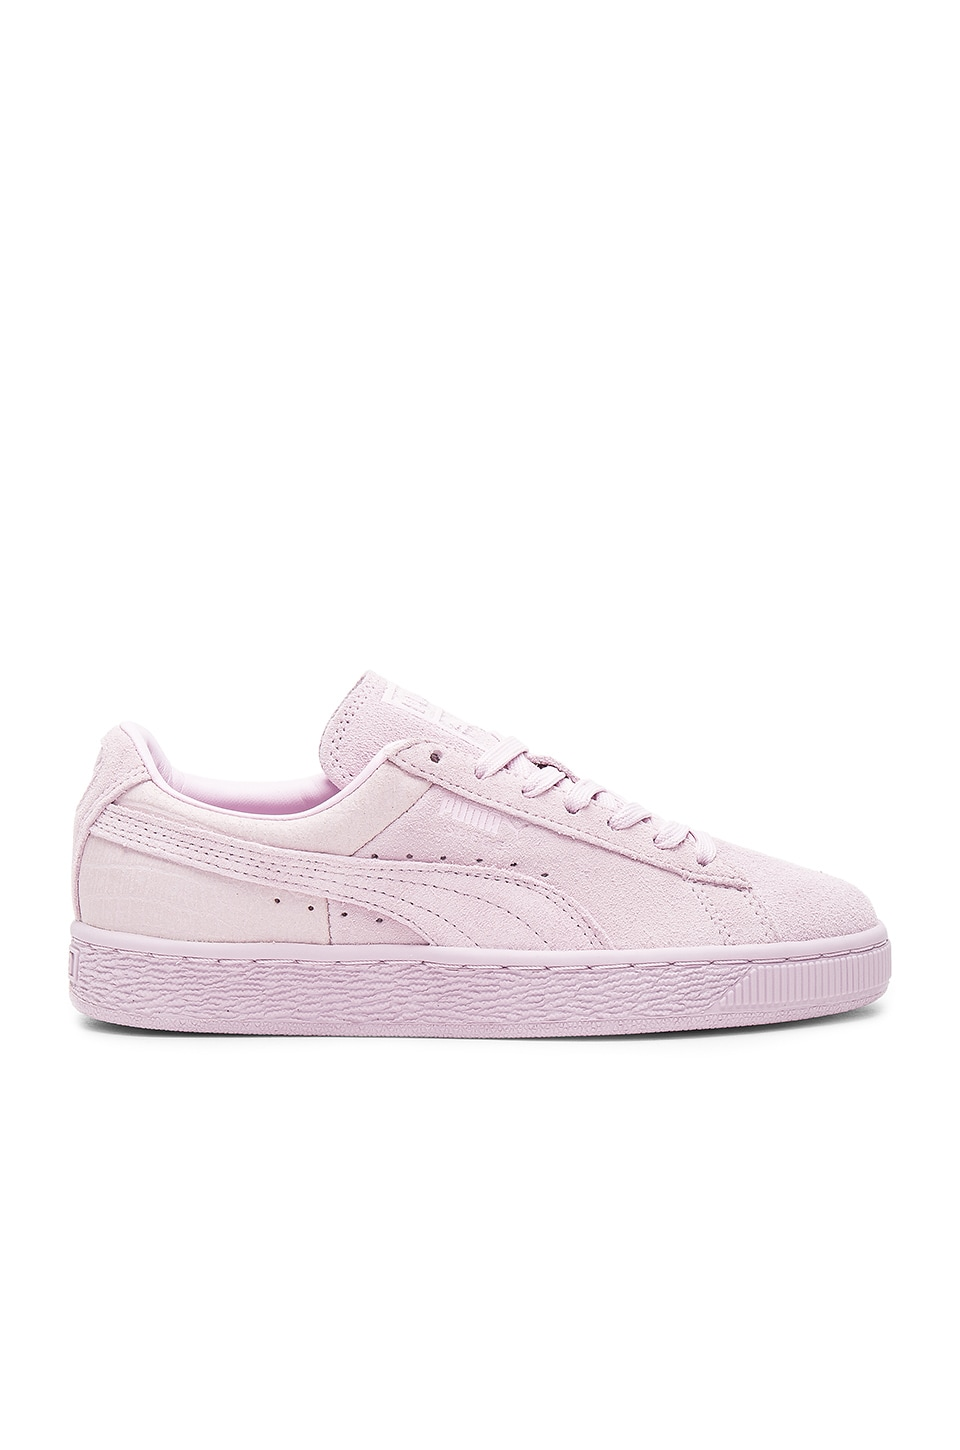 Puma Classic Emboss Sneaker in Lilac Snow